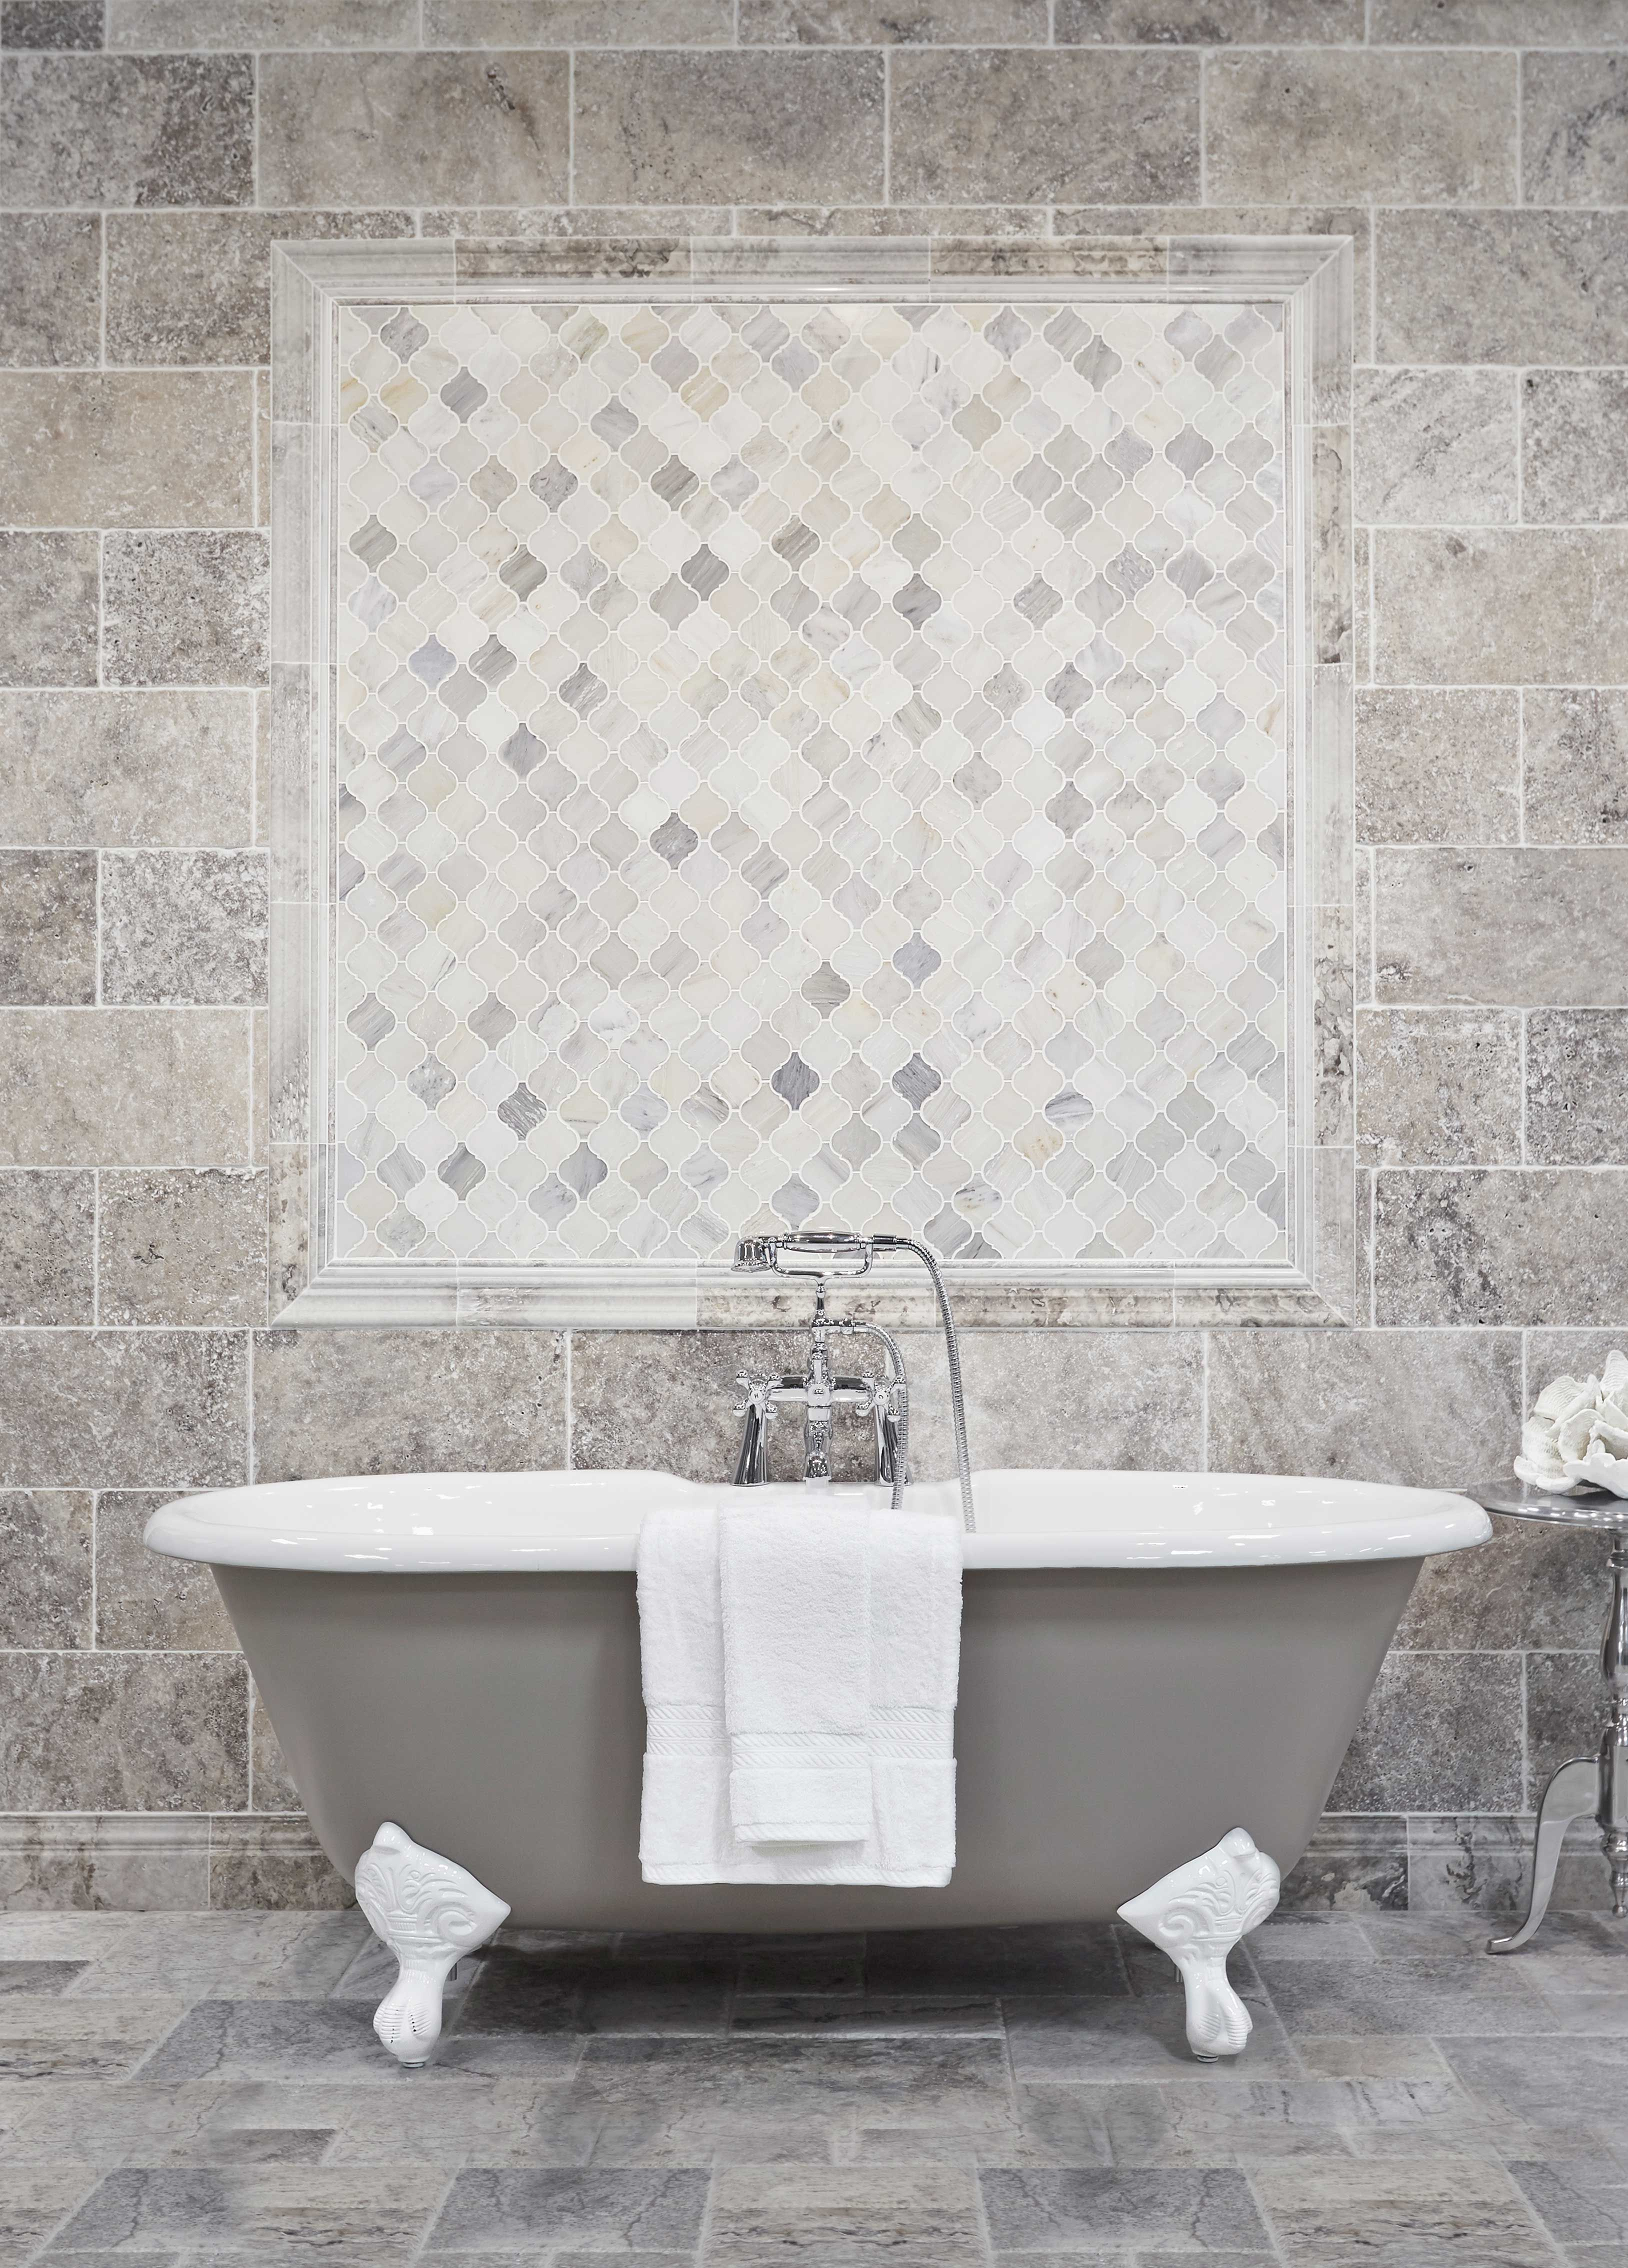 How to do wall tile in bathroom - Bathroom Wall Tile Hampton Polished Arabesque Marble Mosaic Tile Https Www